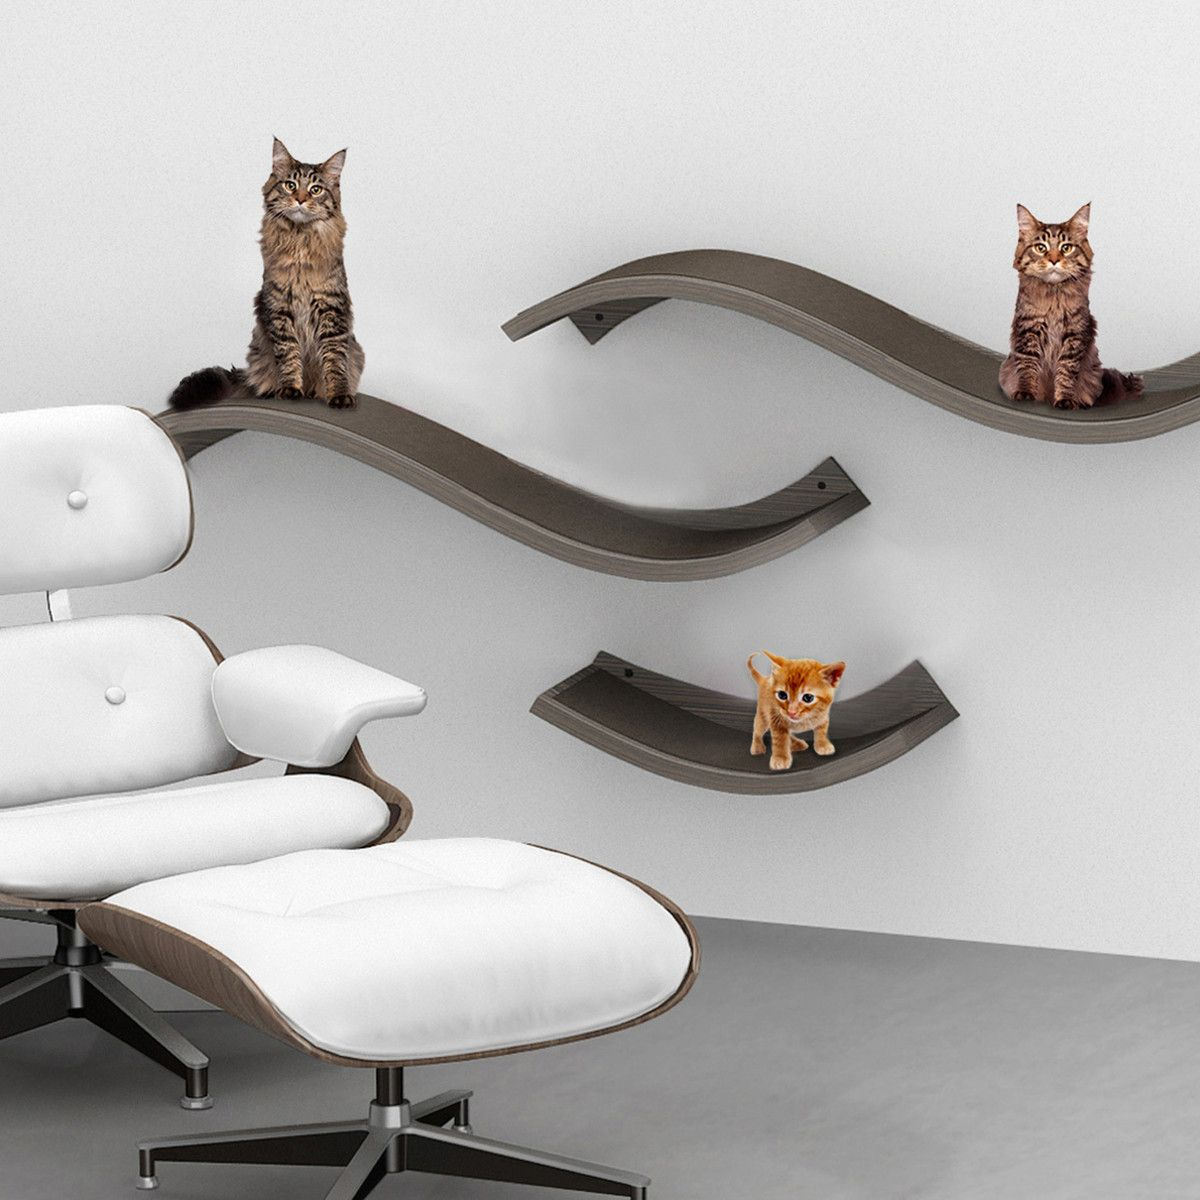 urban cat wave perch cats will love perching on these wavy shelves and watching their